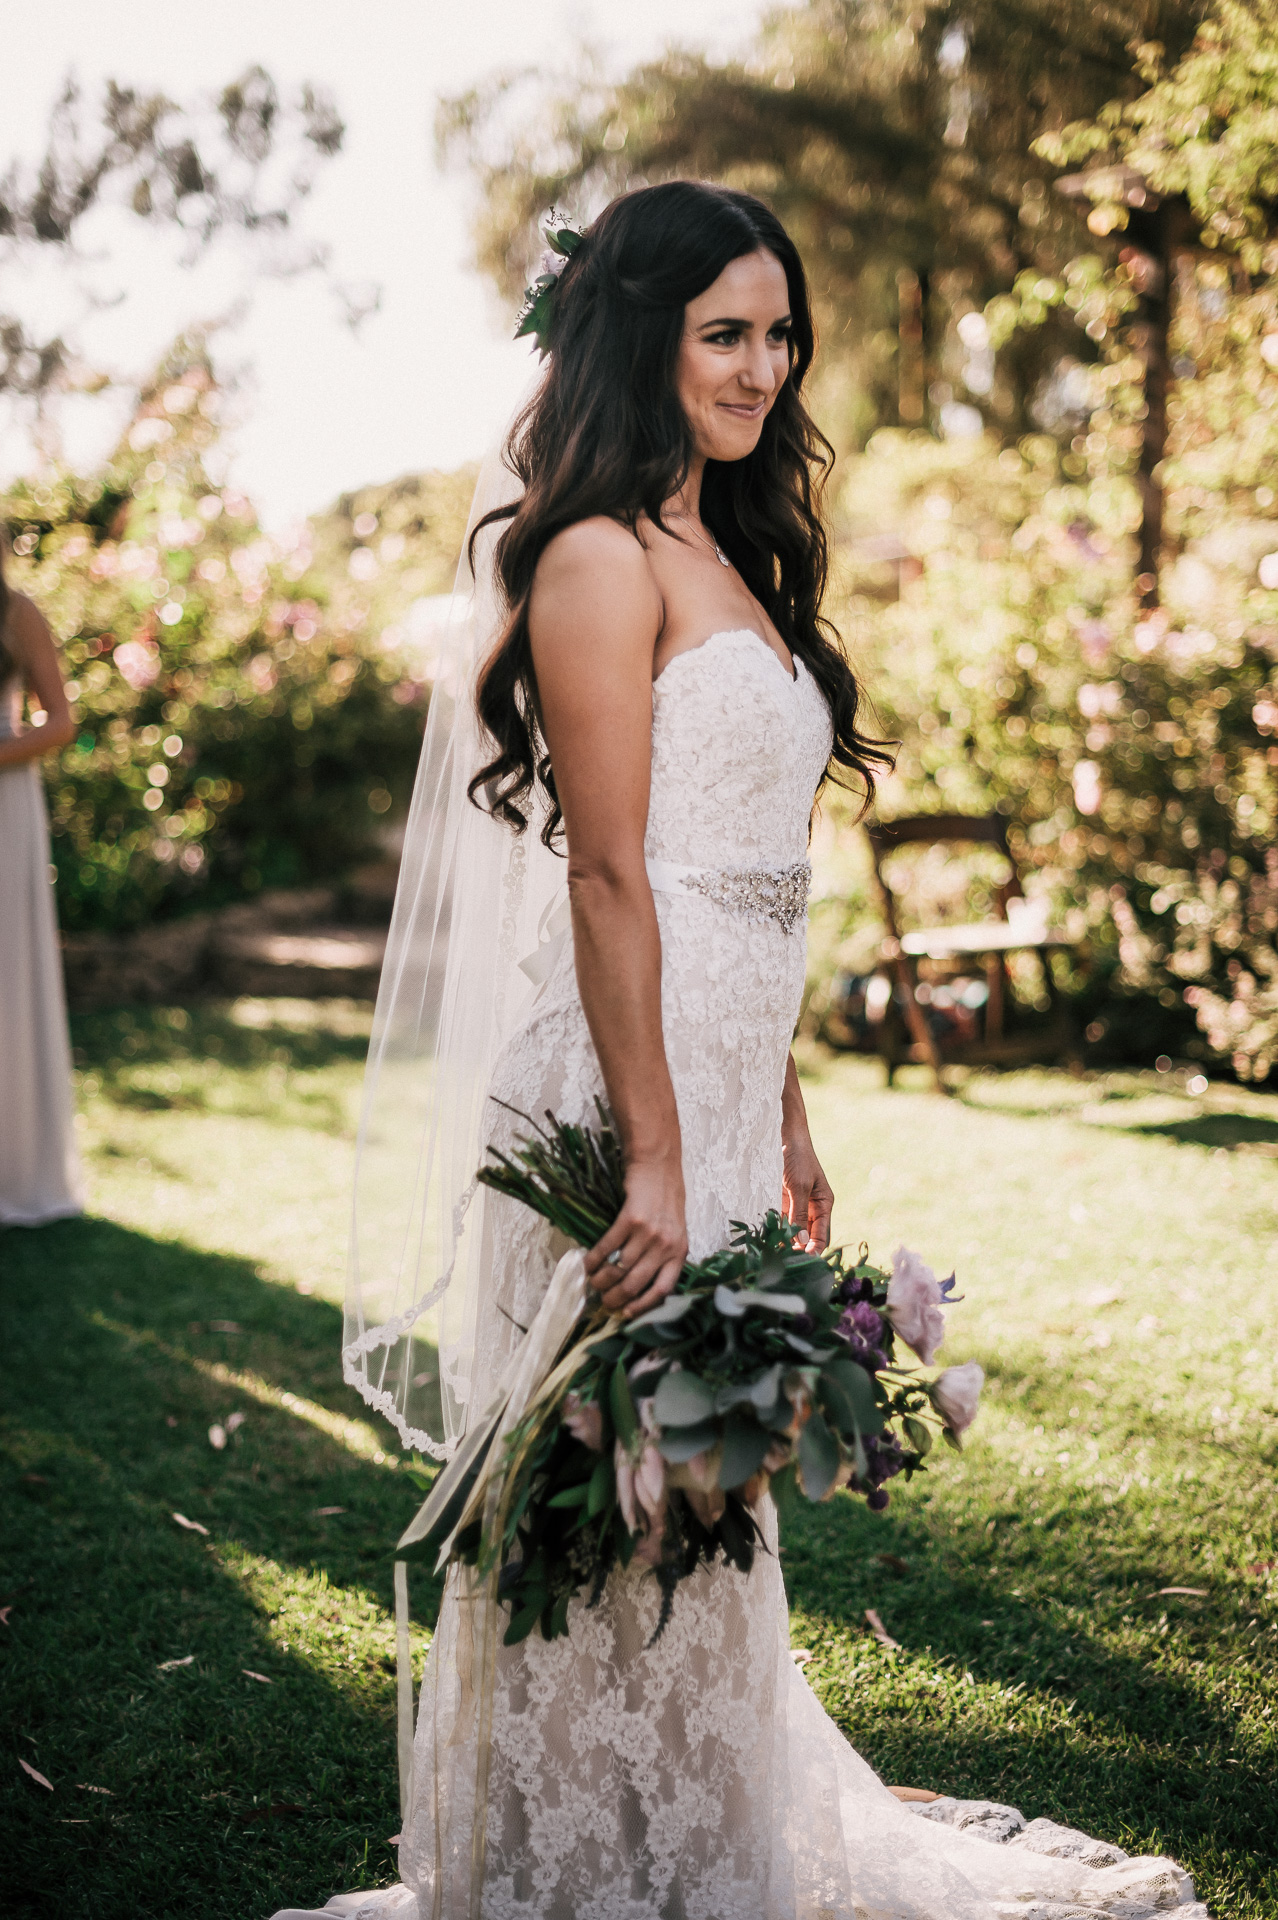 The sun sets on this beautiful bride at the rustic Quail Haven Farm in Vista, California.